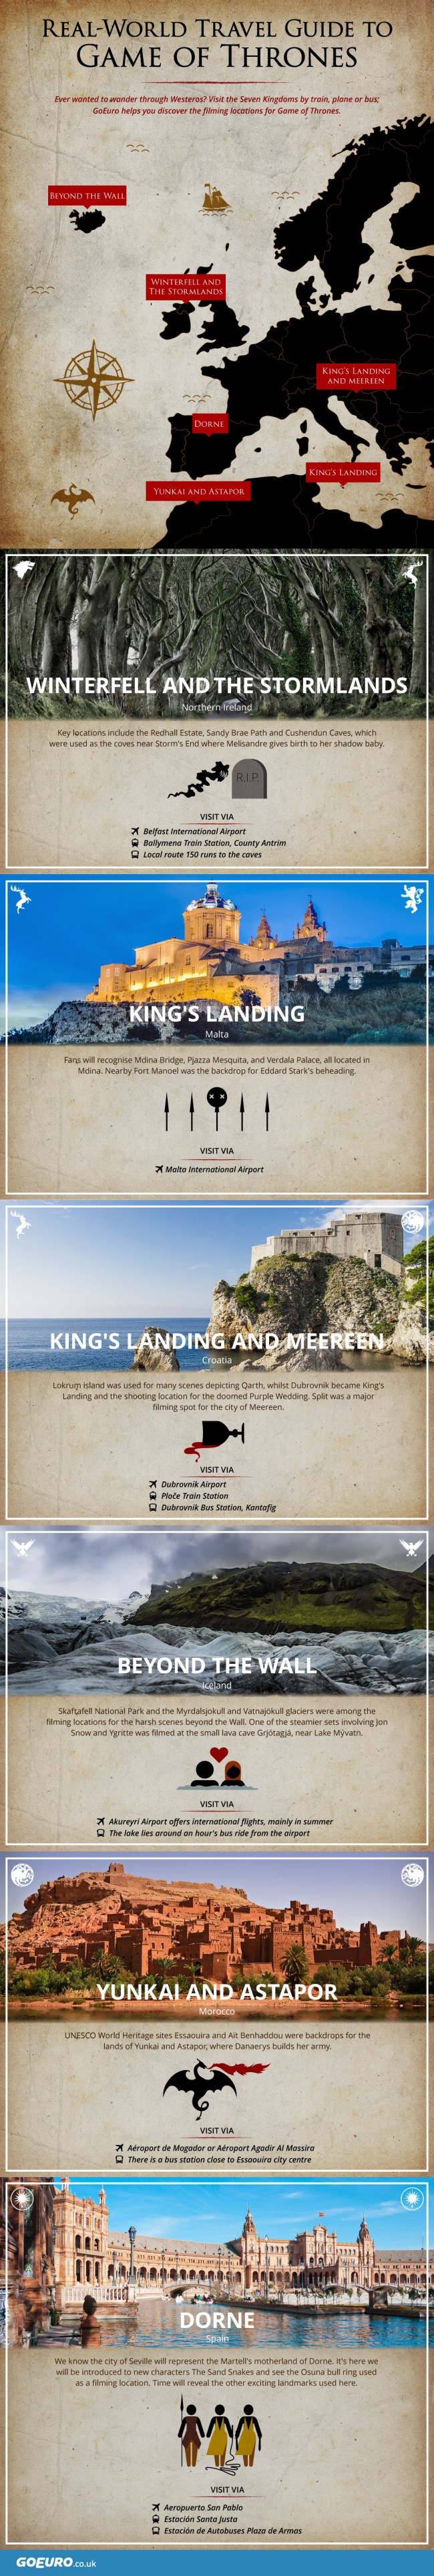 Film Locations for Game of Thrones